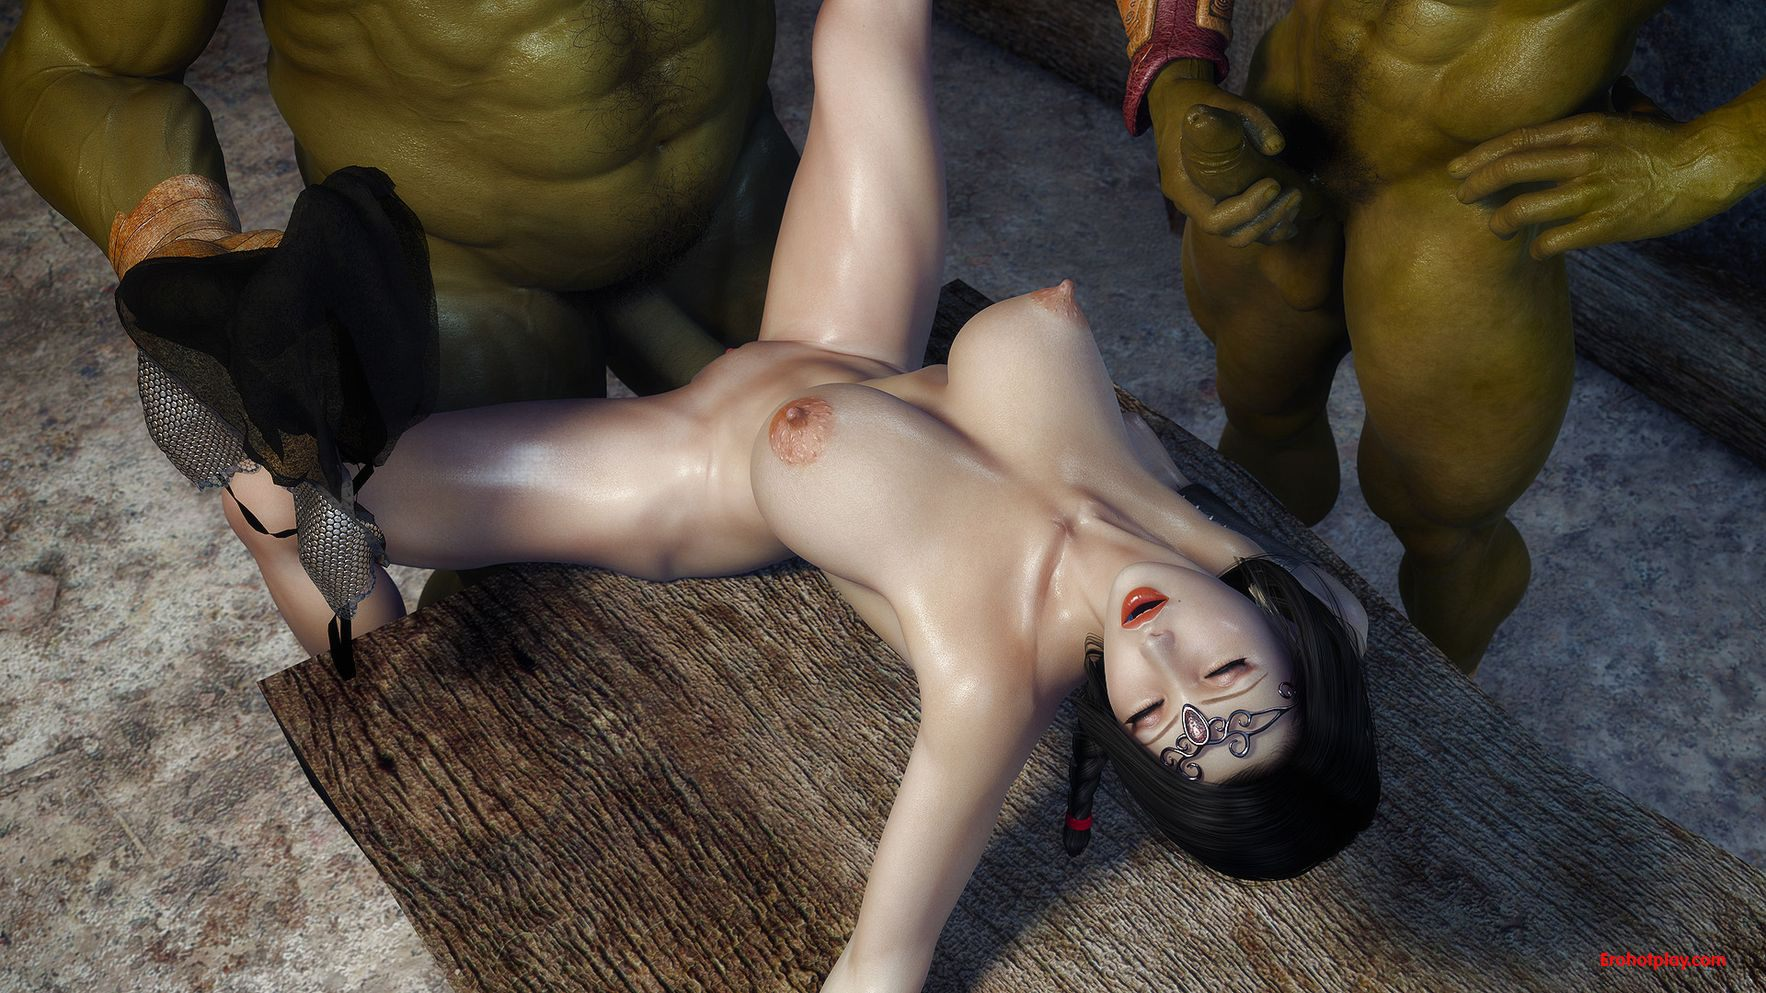 Blackadder fairy hentai - hd pic